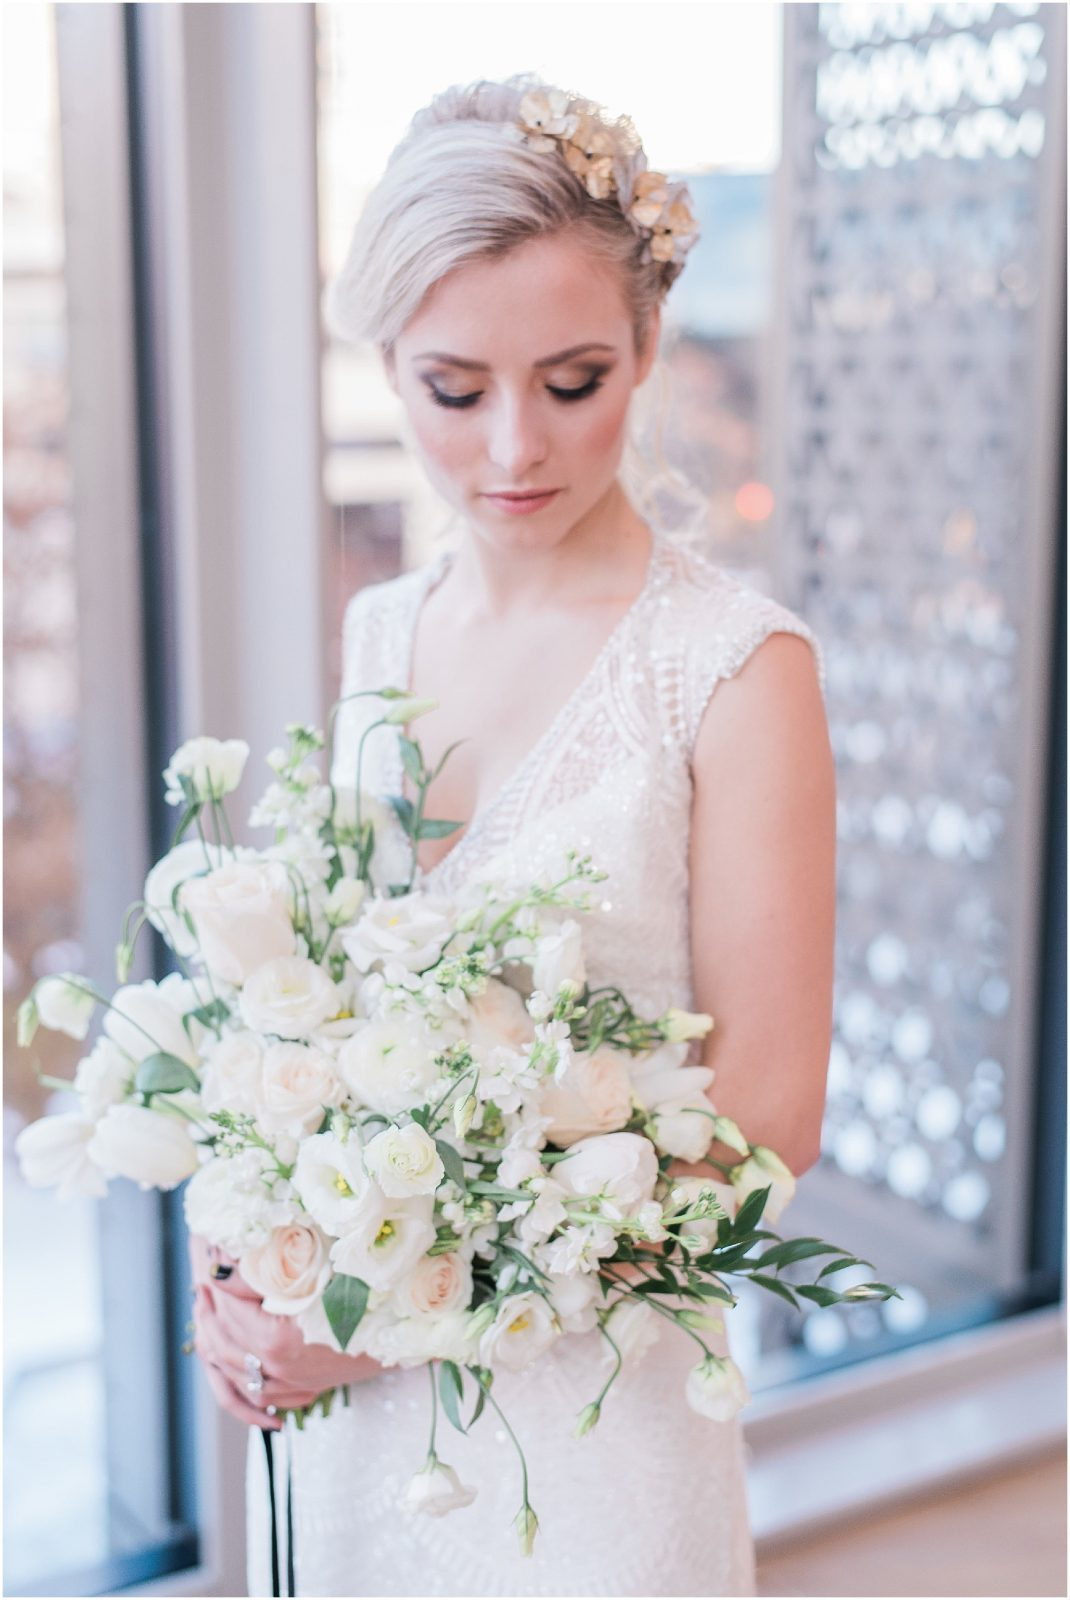 Wedding O'Born Room NAC Ottawa - New Years Glam Wedding Inspiration - bright and airy ottawa wedding photographer - elegant bride - lush white and green bouquet